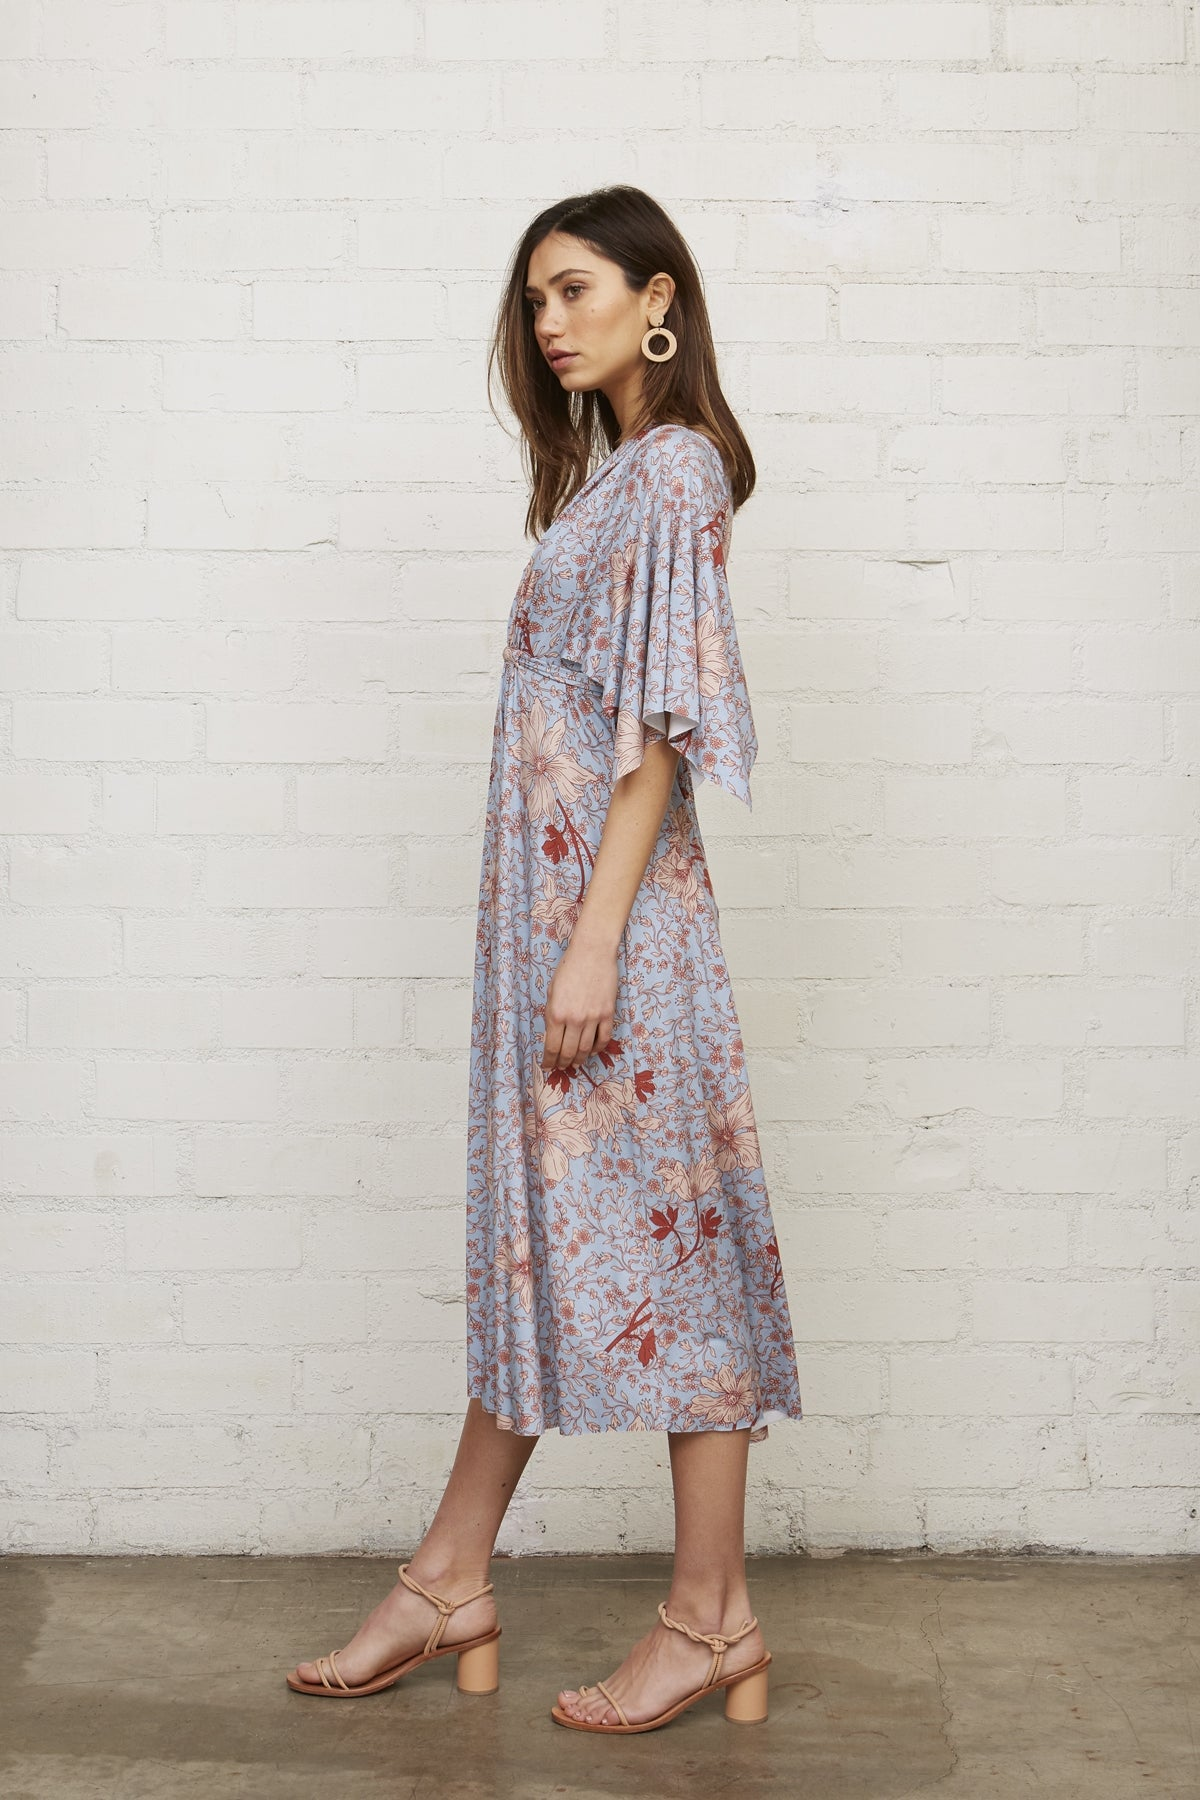 Mid-Length Caftan Dress - Prairie